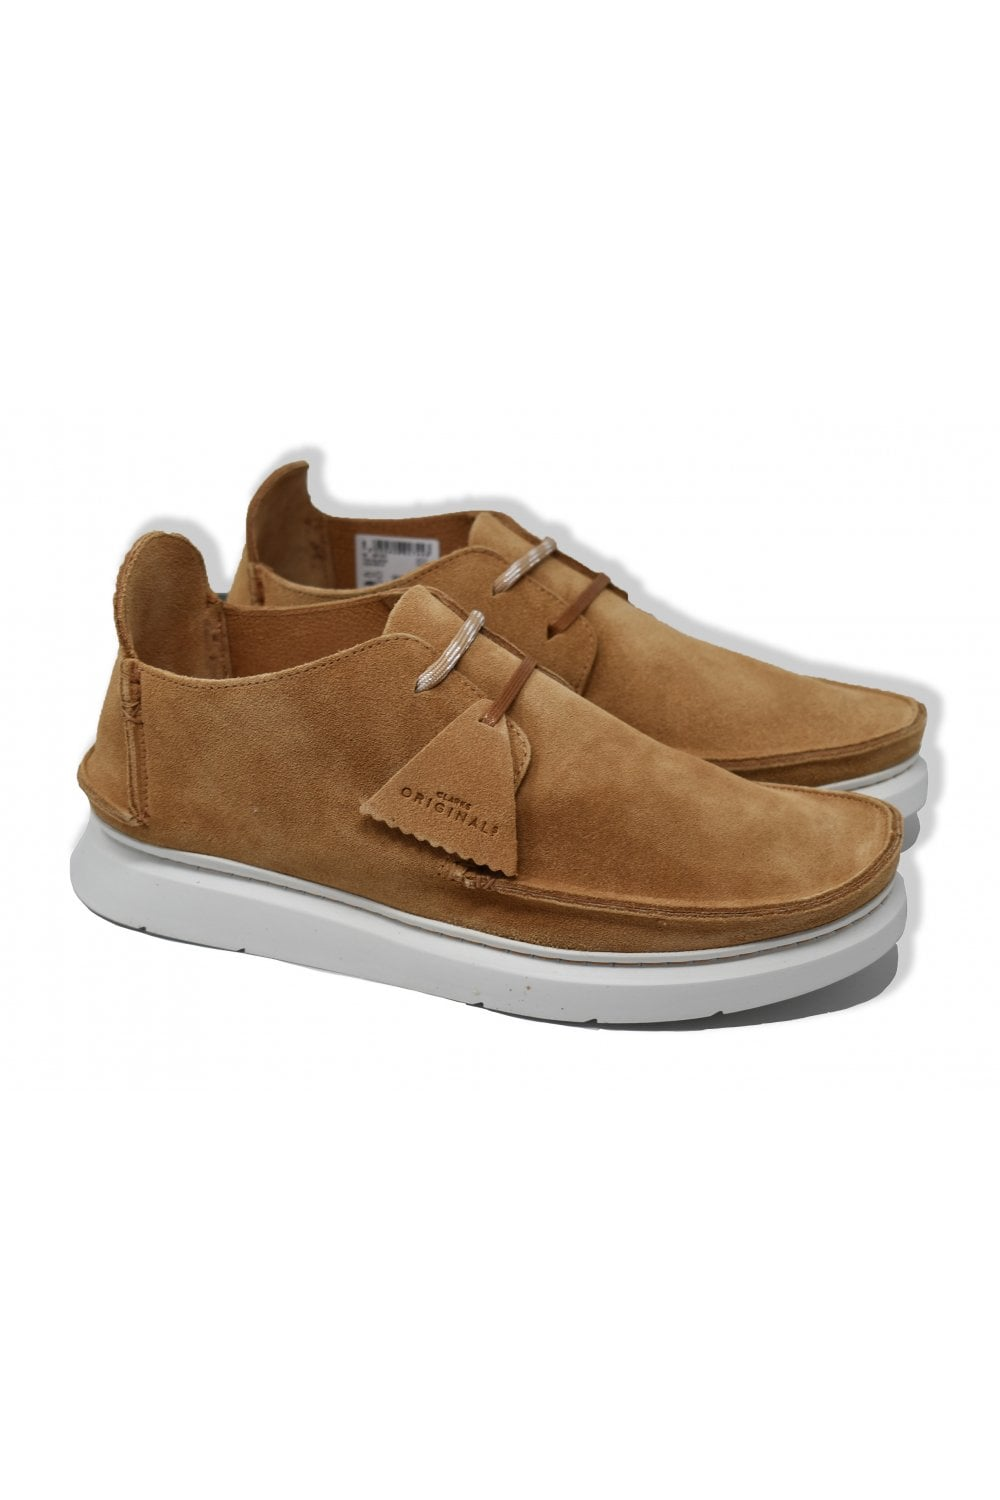 low priced 02a9f 5dd93 Seven Suede Shoes (Tan)